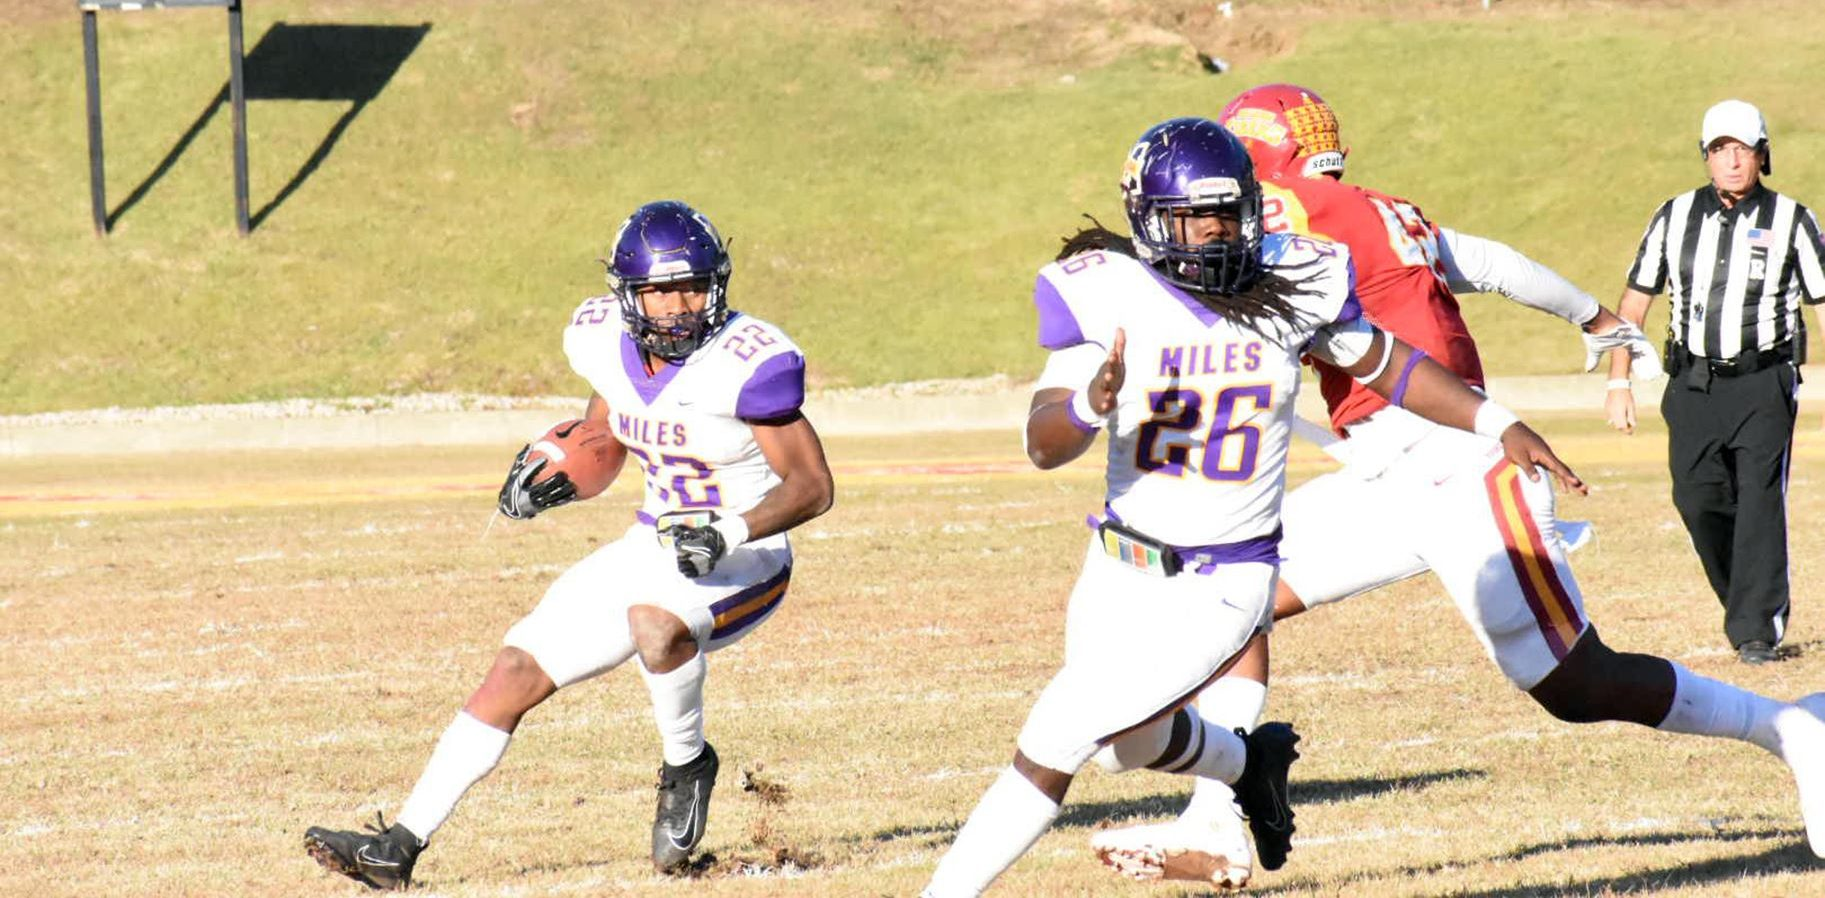 Miles Releases 2020 Football Schedule